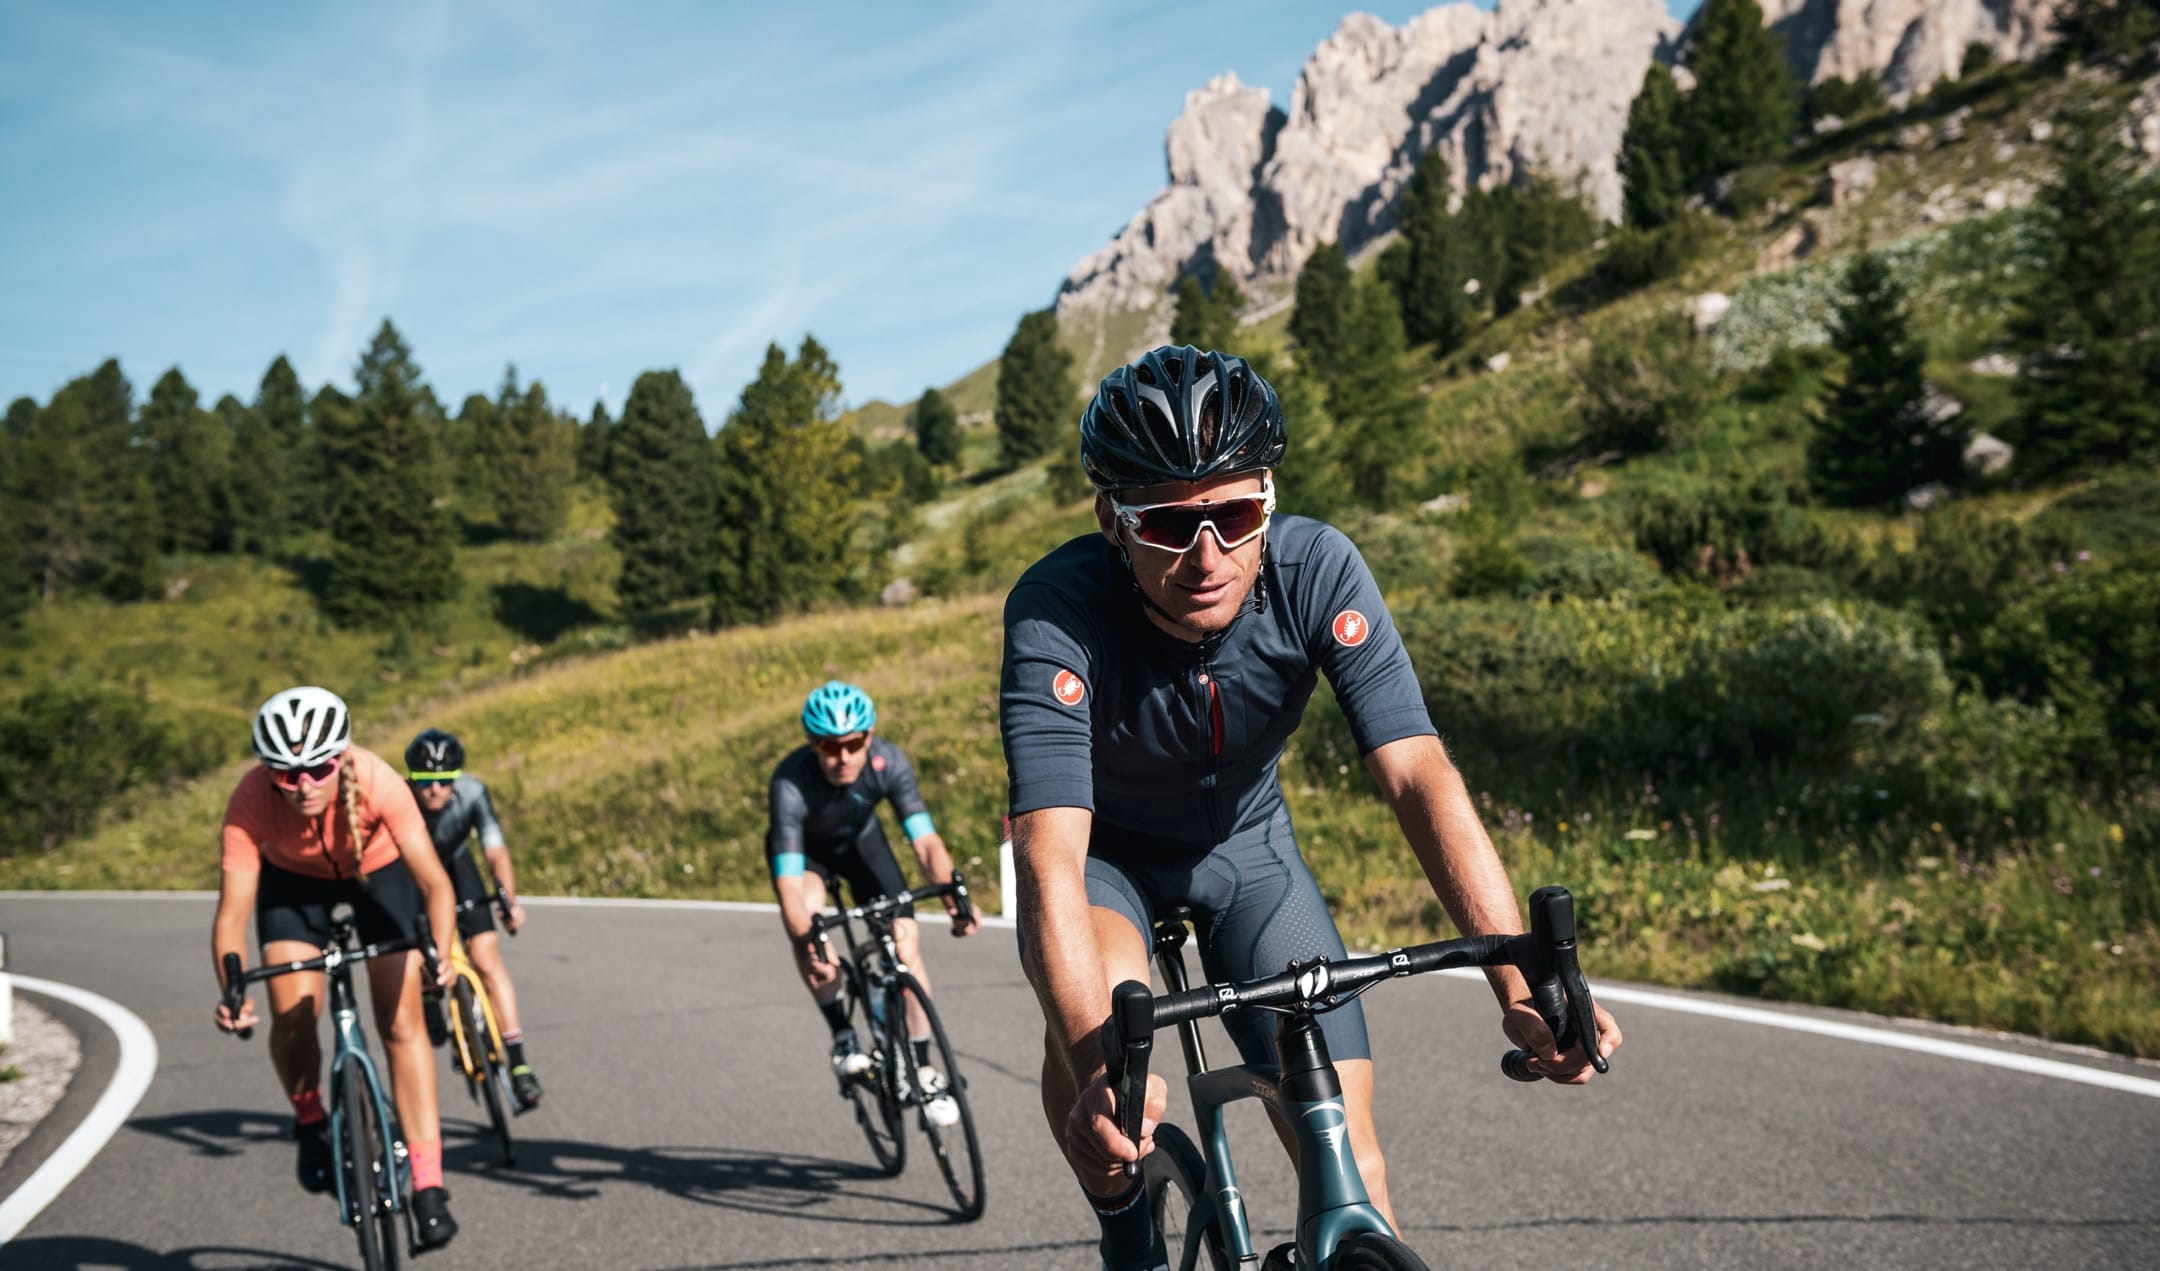 Amateur cycling event in the Dolomites